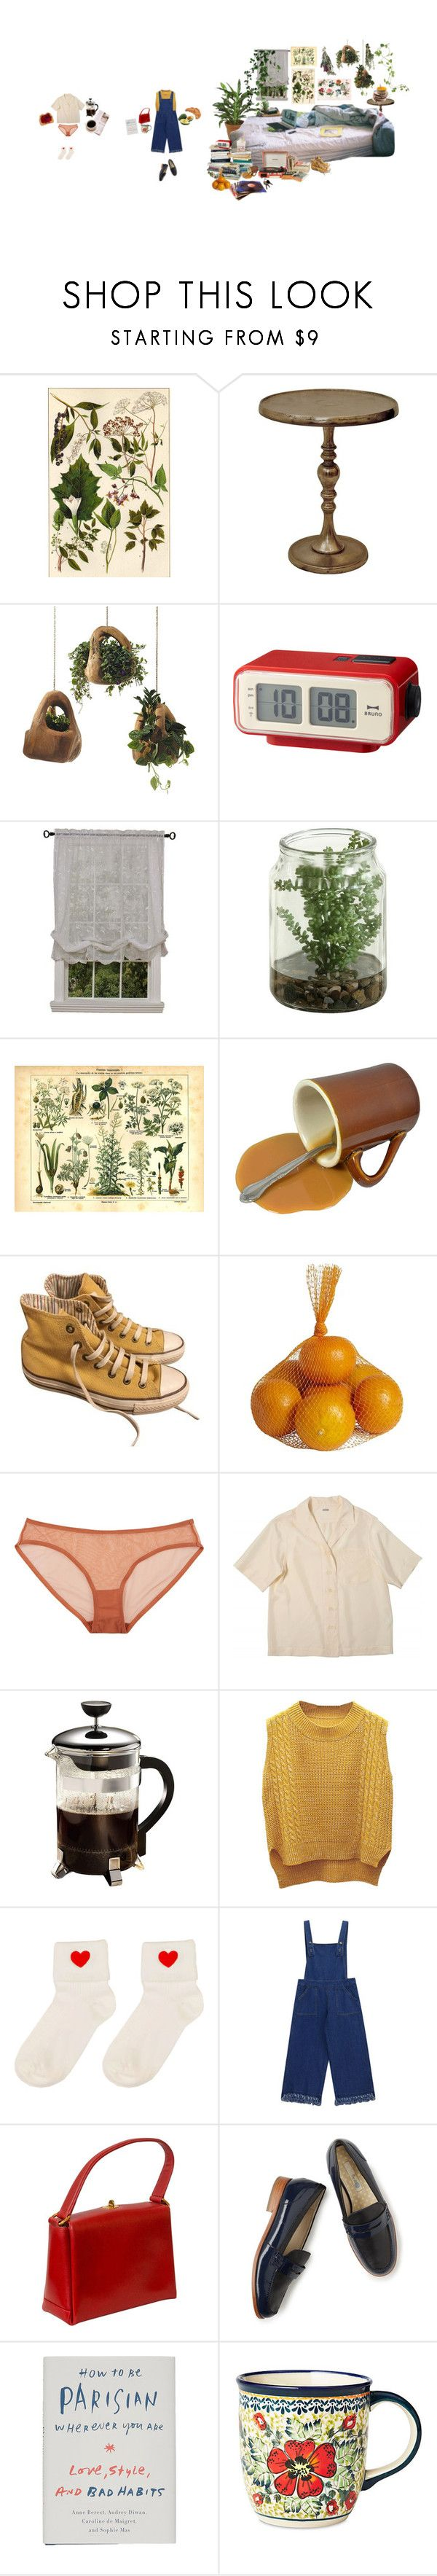 """""""morning and day"""" by steve-buscemi ❤ liked on Polyvore featuring Renwil, Dot & Bo, IDEA International, Habitat, Crosley, Converse, ...Lost, Pier 1 Imports, Eres and Primula"""